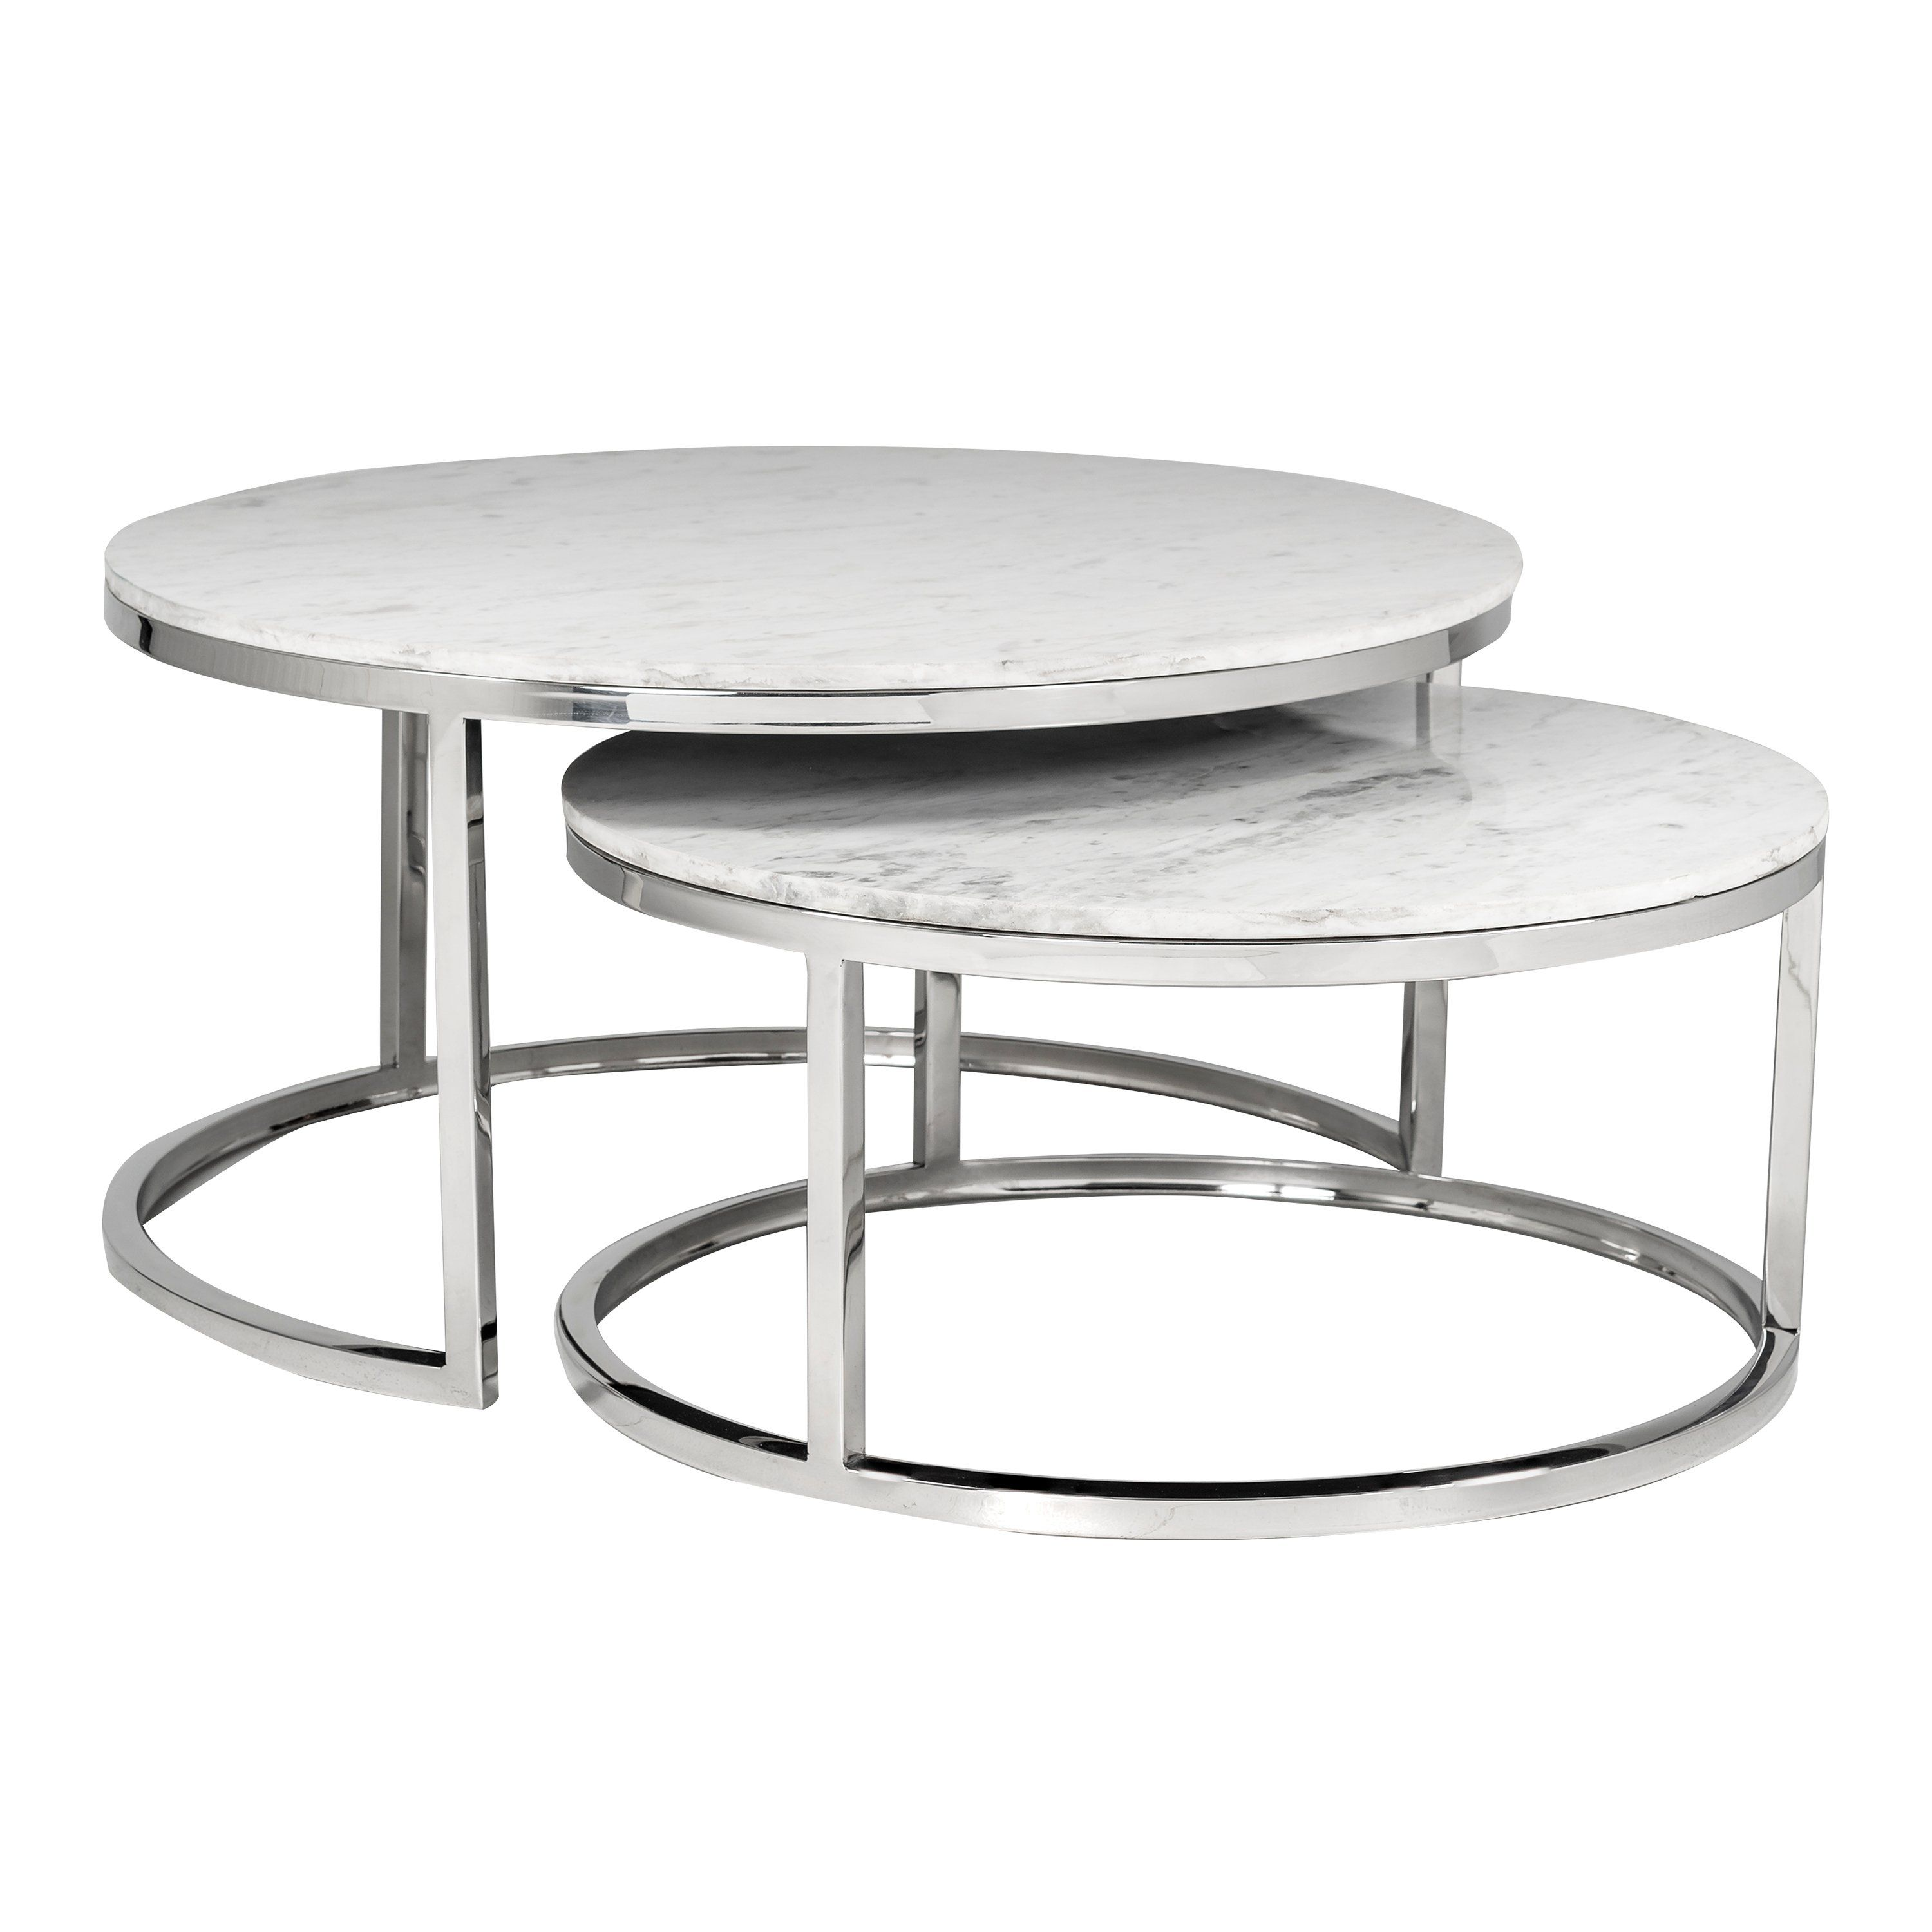 Sardinia Set Of 2 White Marble Coffee Tables In 2021 Coffee Table Round Coffee Table Modern Marble Coffee Table [ 3000 x 3000 Pixel ]